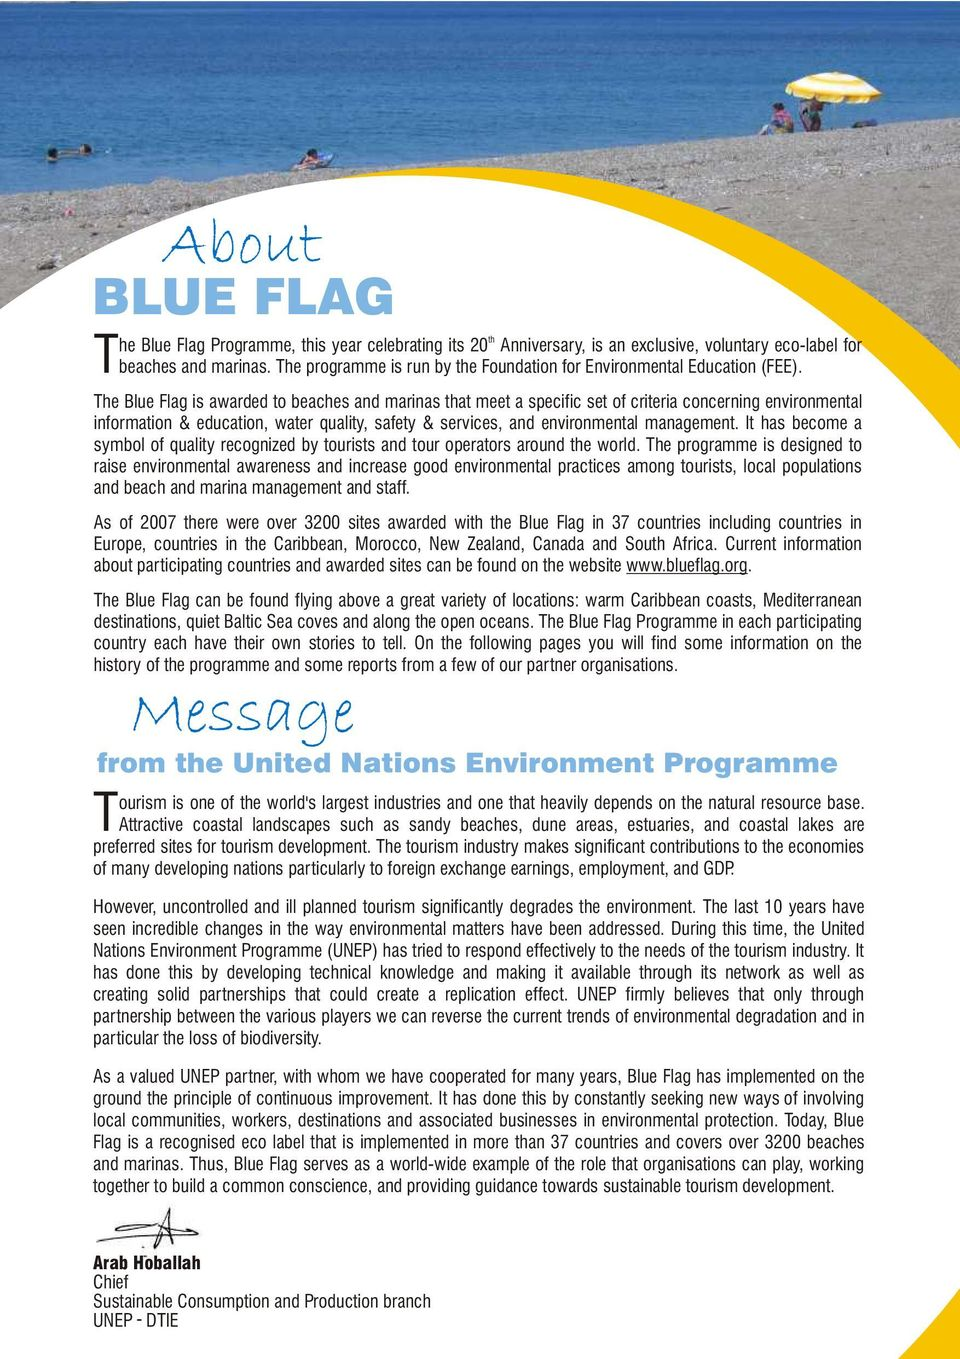 The Blue Flag is awarded to beaches and marinas that meet a specific set of criteria concerning environmental information & education, water quality, safety & services, and environmental management.